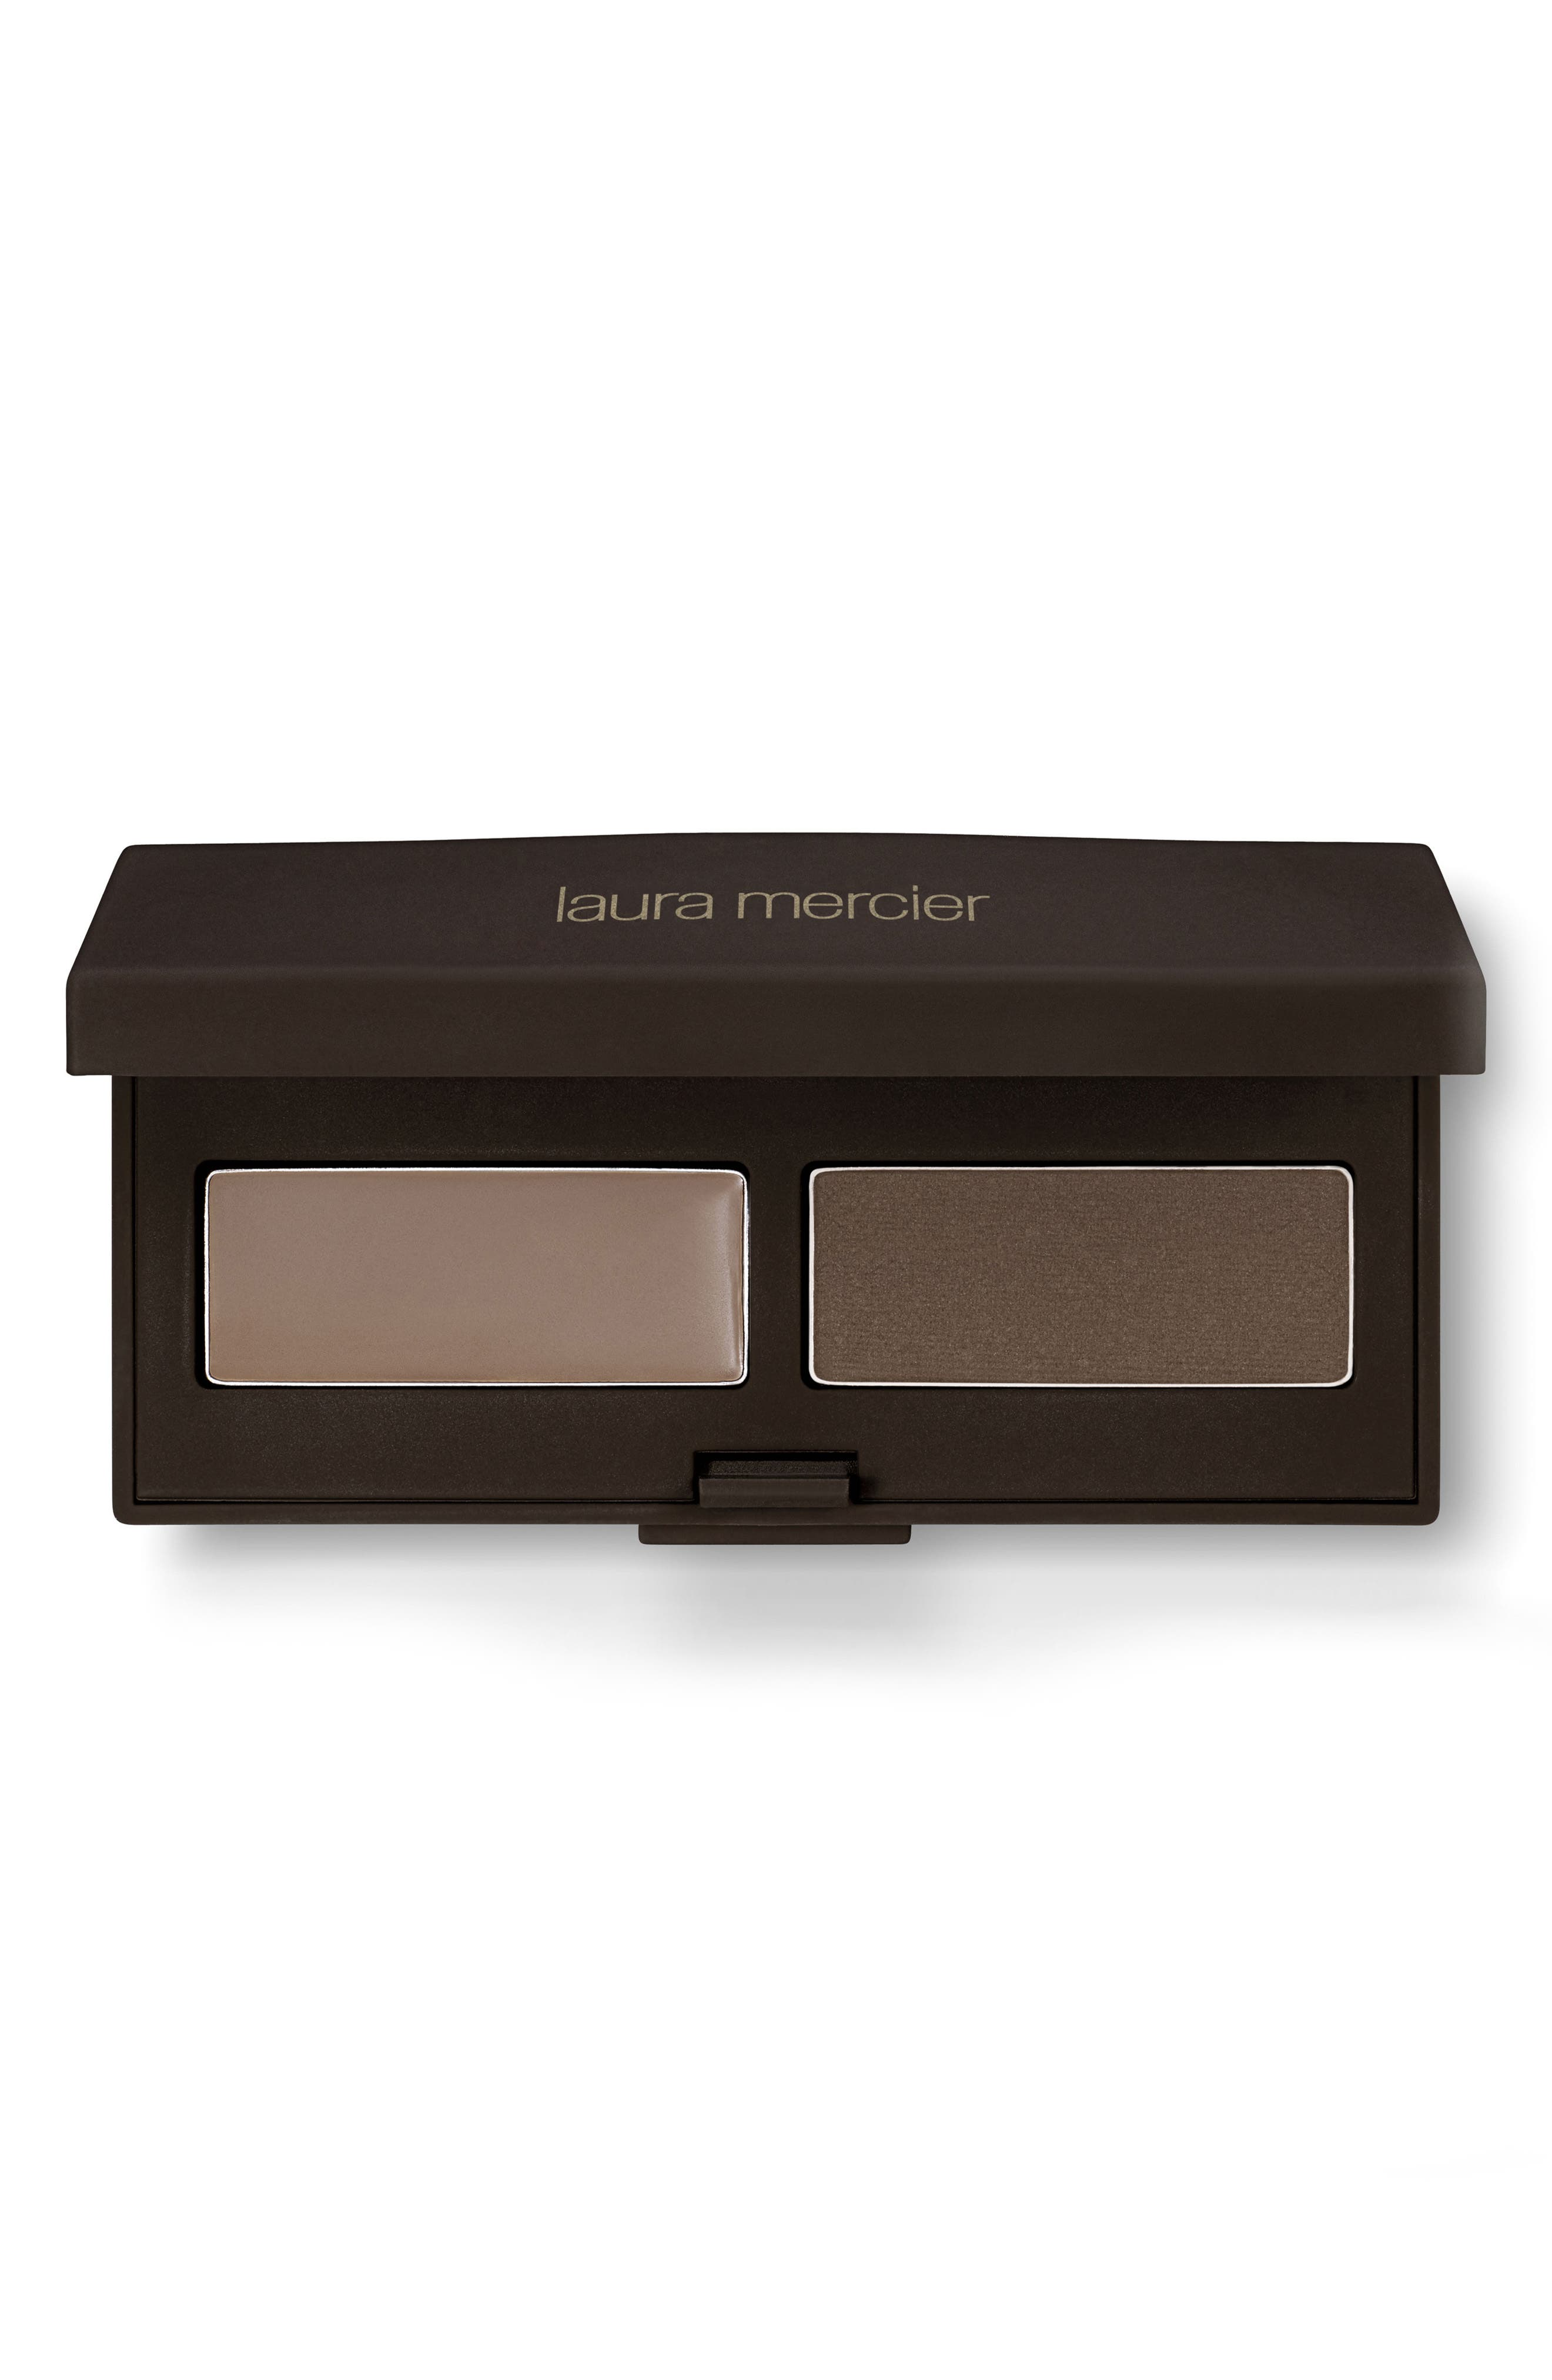 Laura Mercier Sketch & Intensify Pomade and Brow Powder Duo